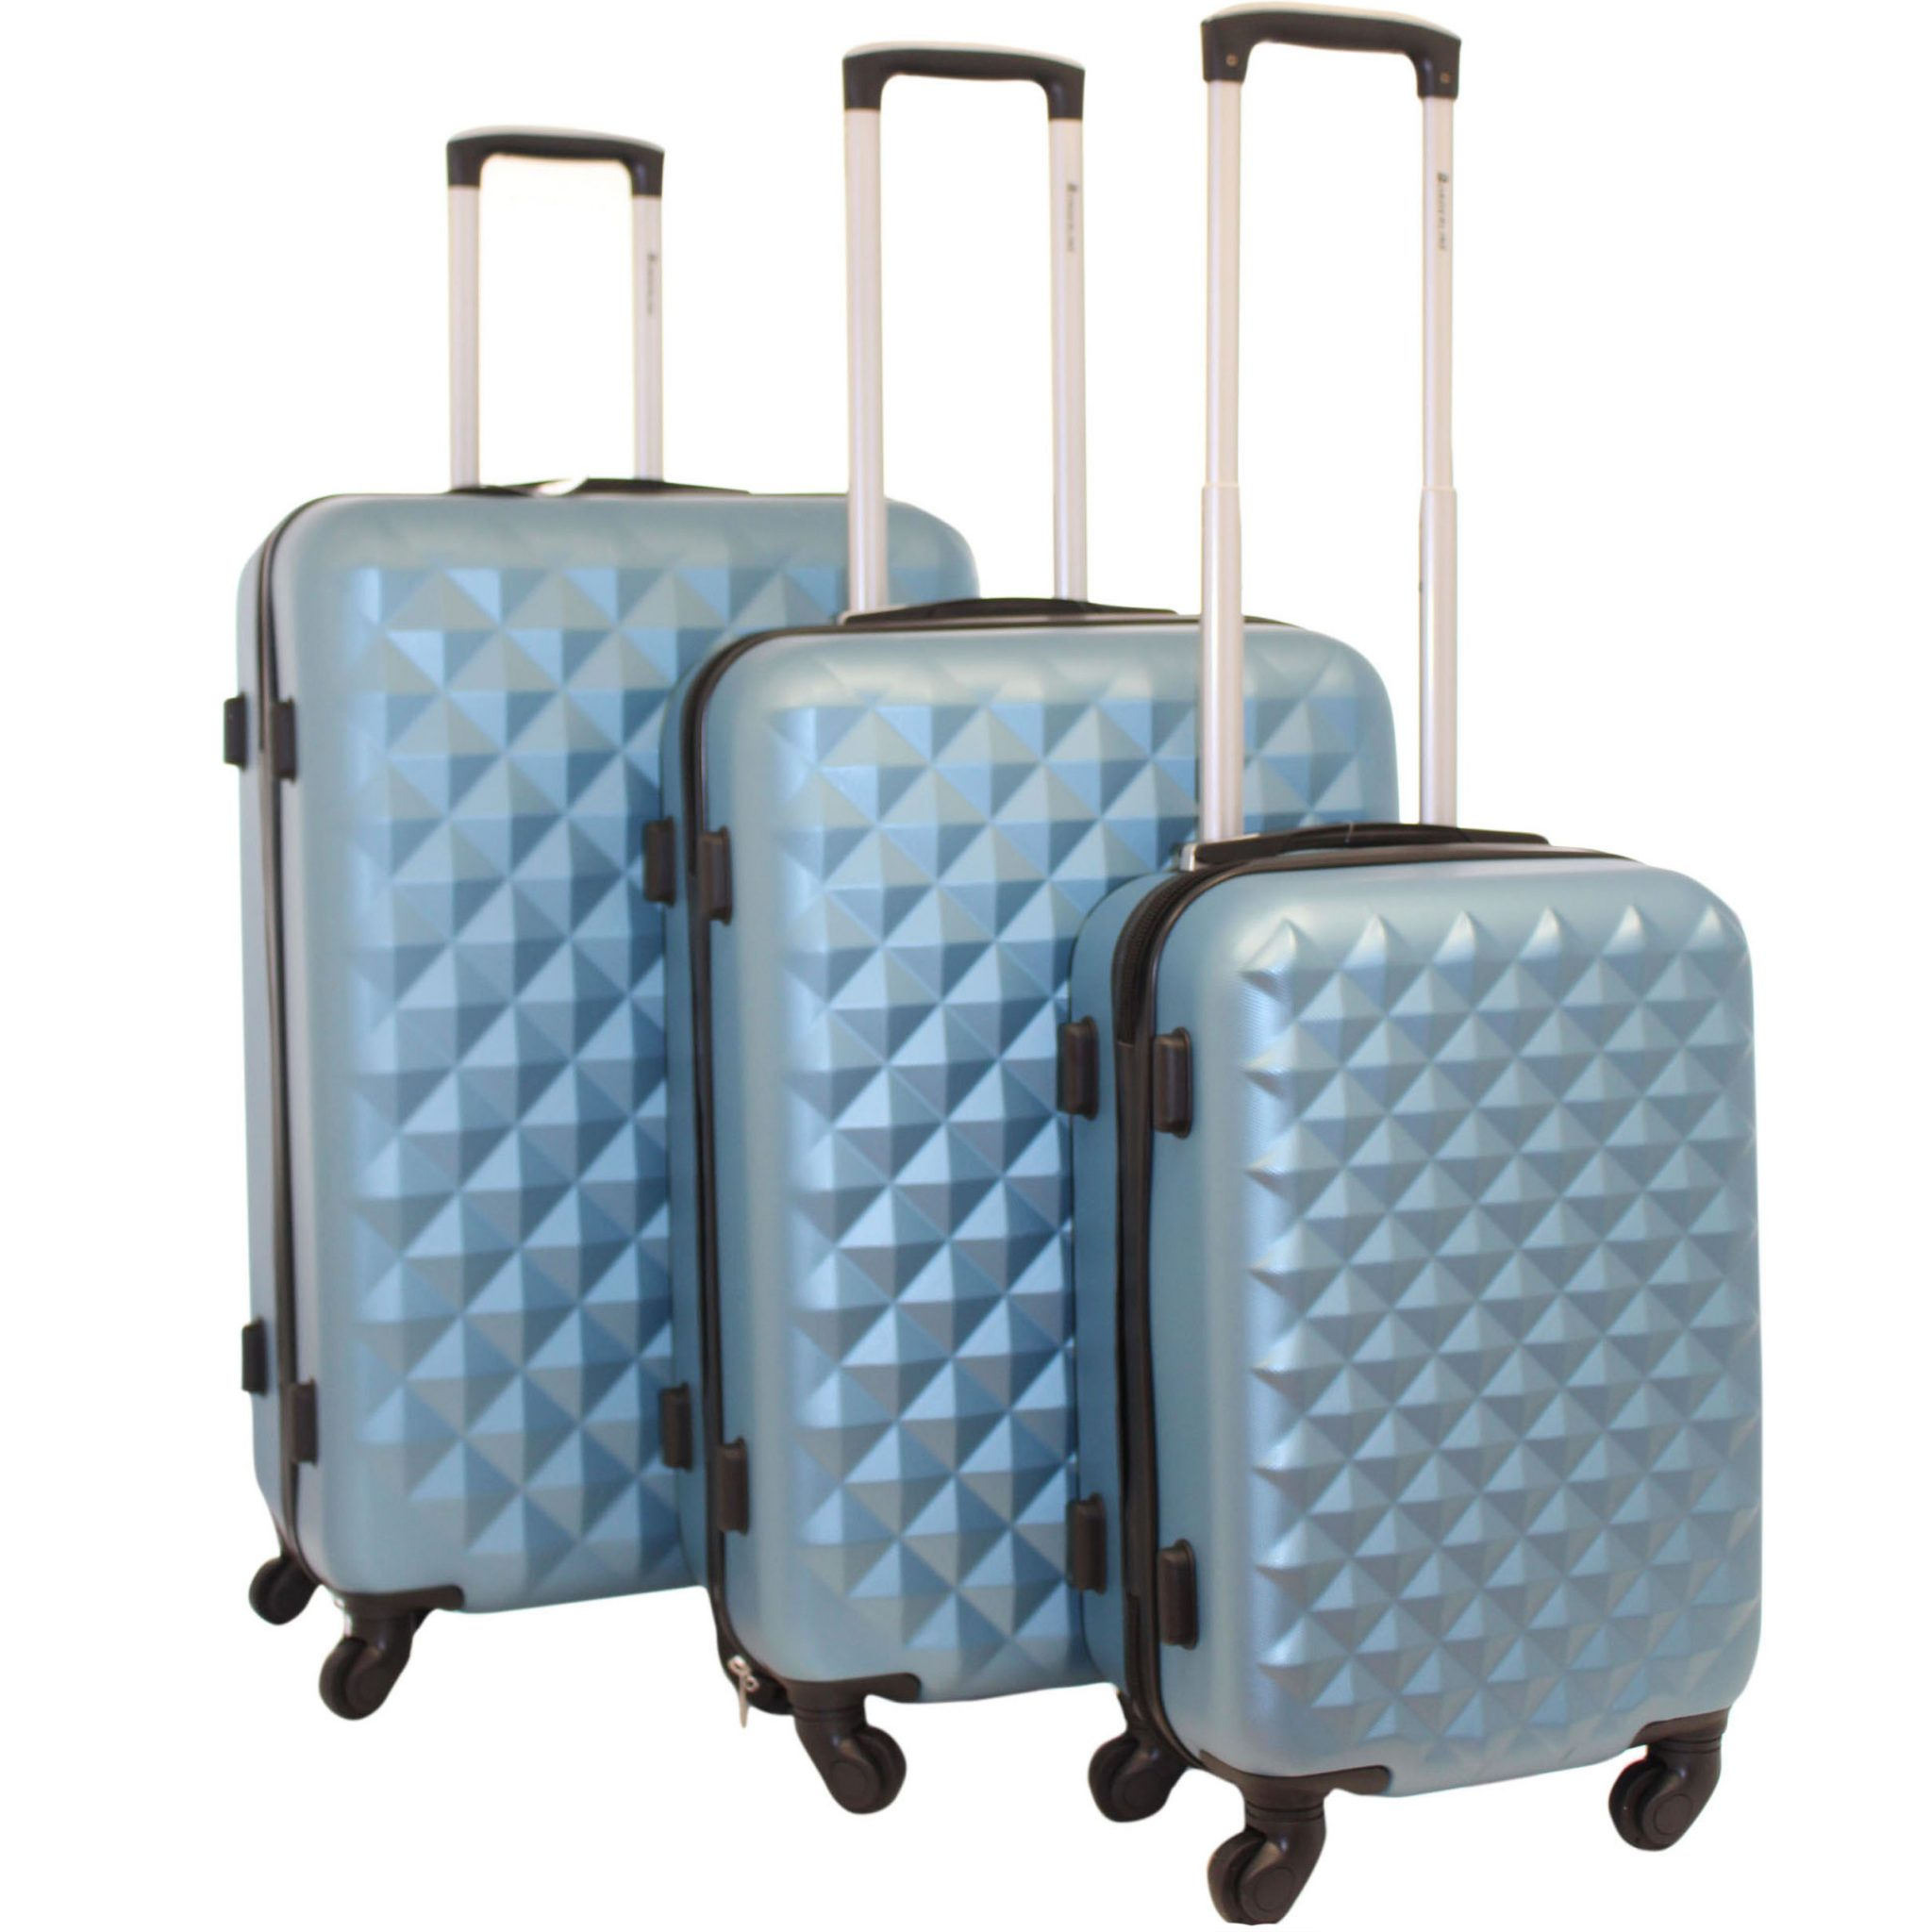 2020 Blue - Set of 3 Luggage ~ BAGZONE - Suppliers of Fashion ... c03308ae715f7